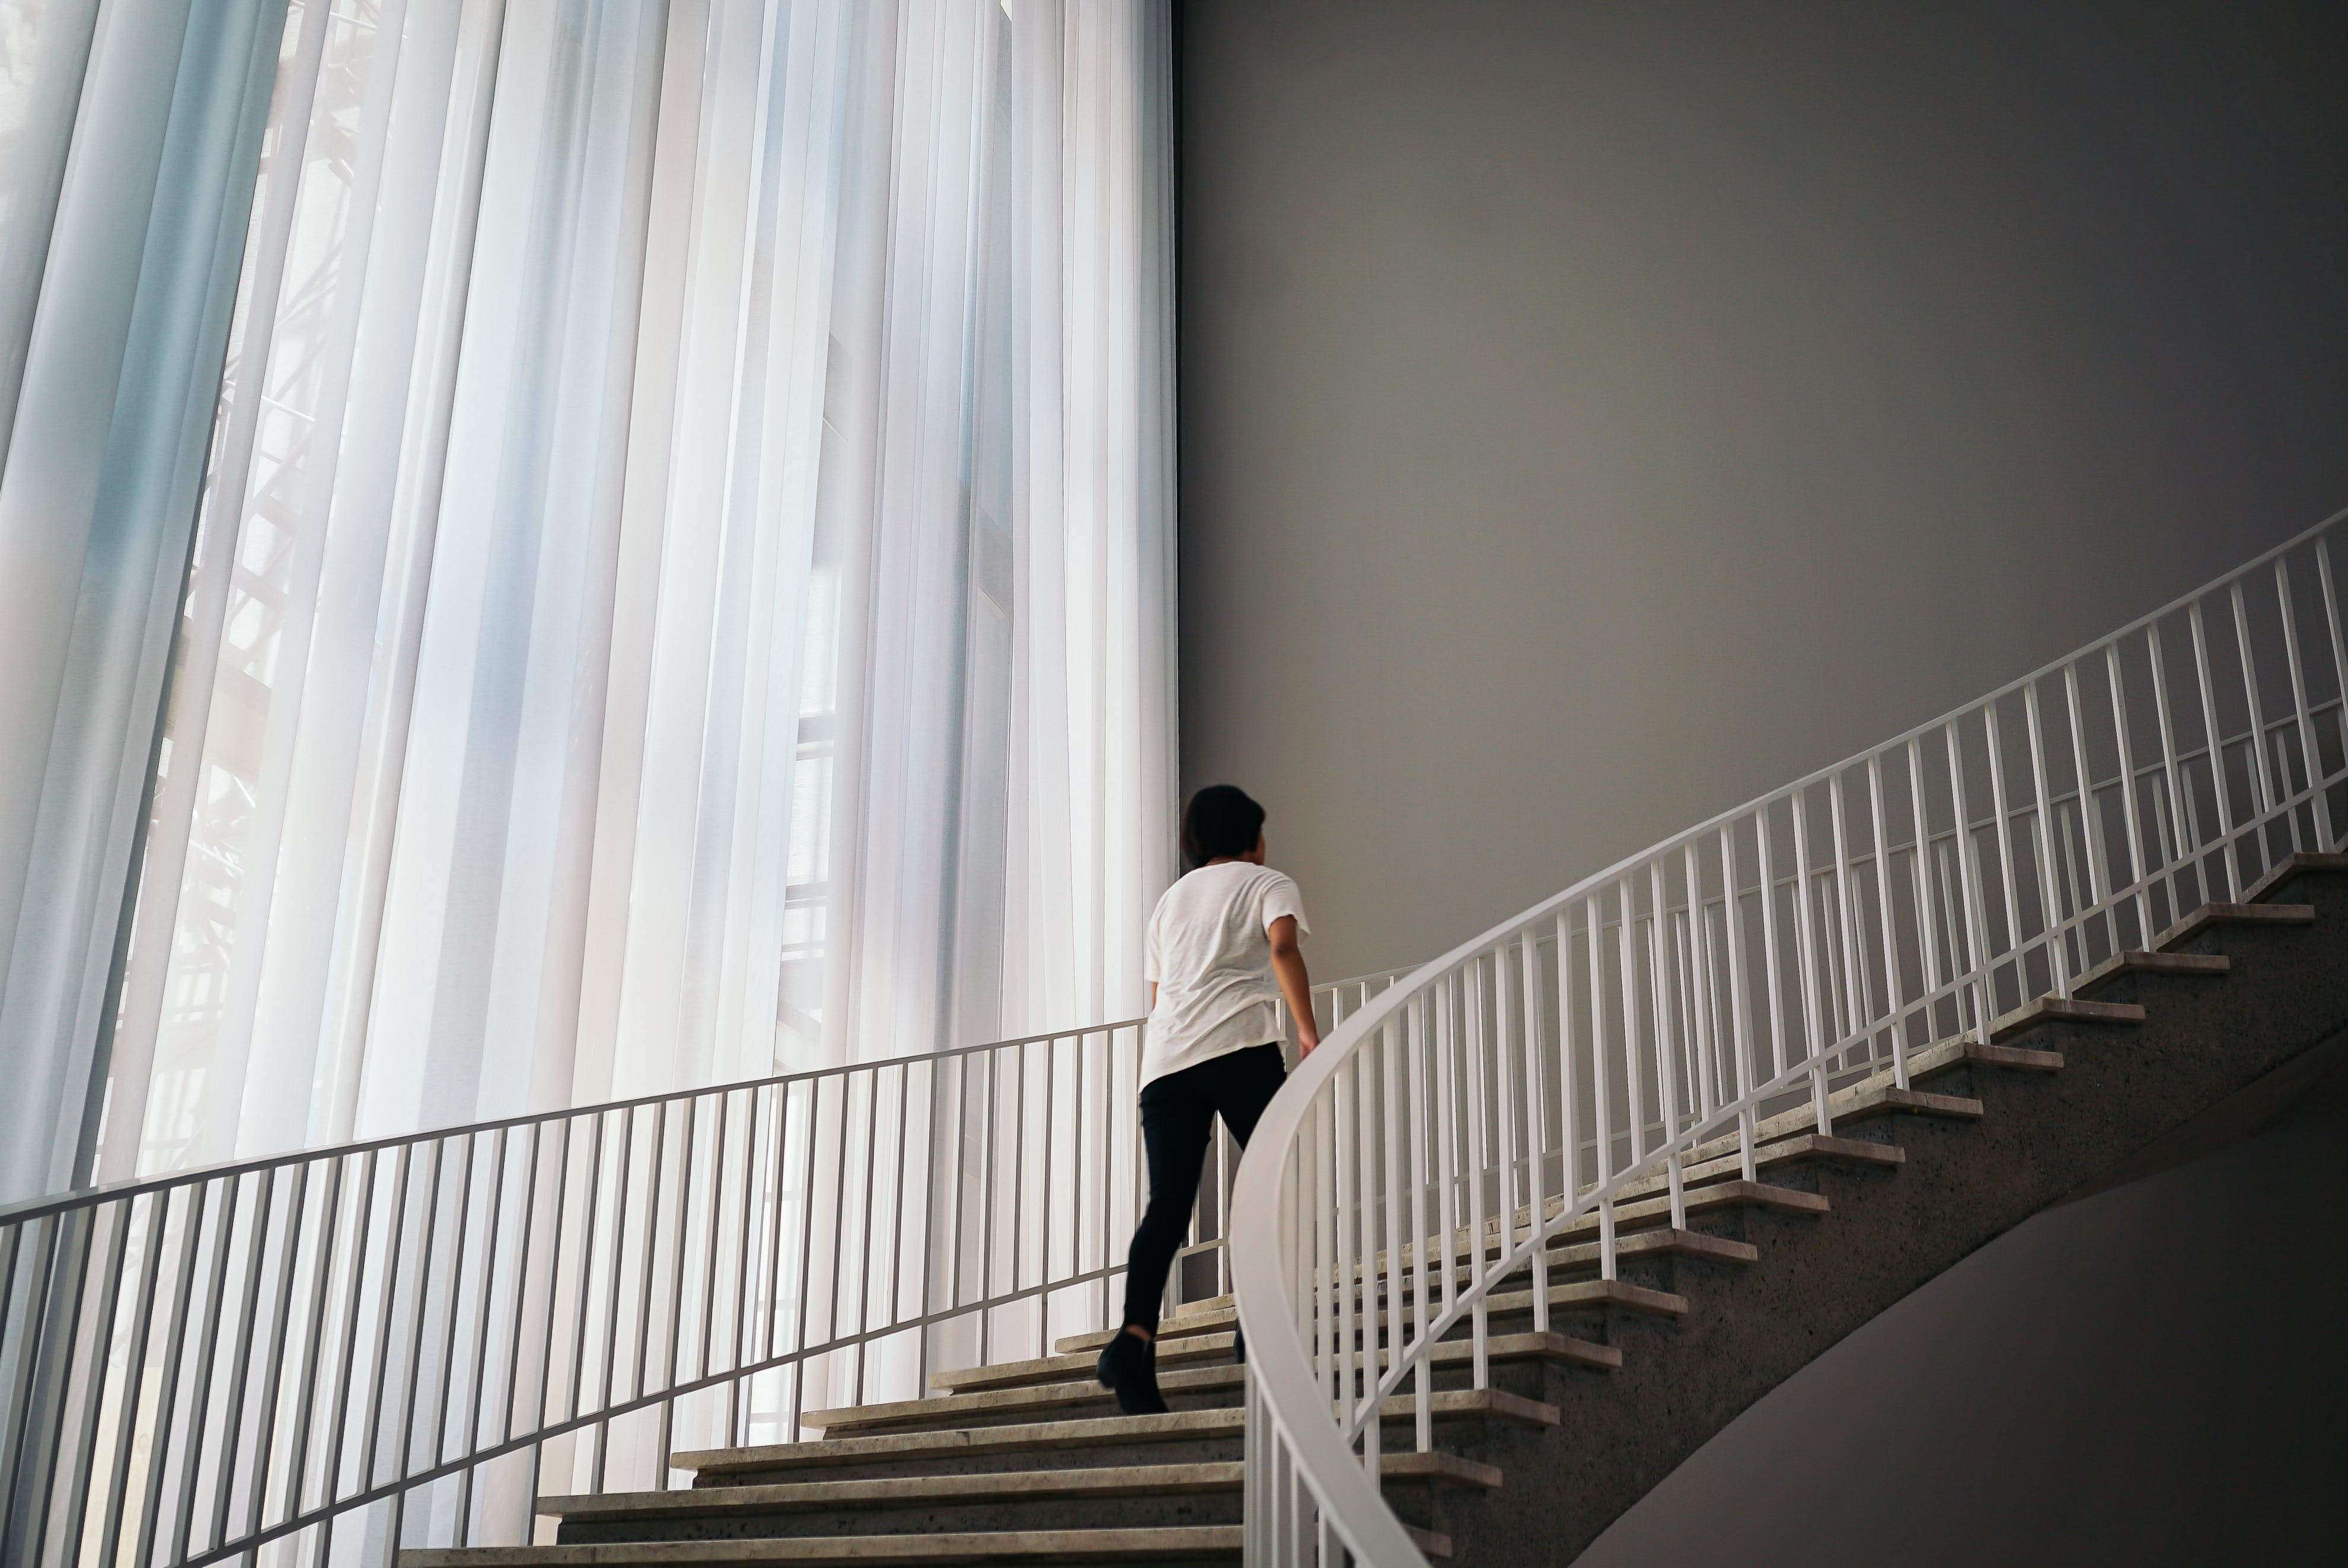 Person Walking On Stairs Inside Building